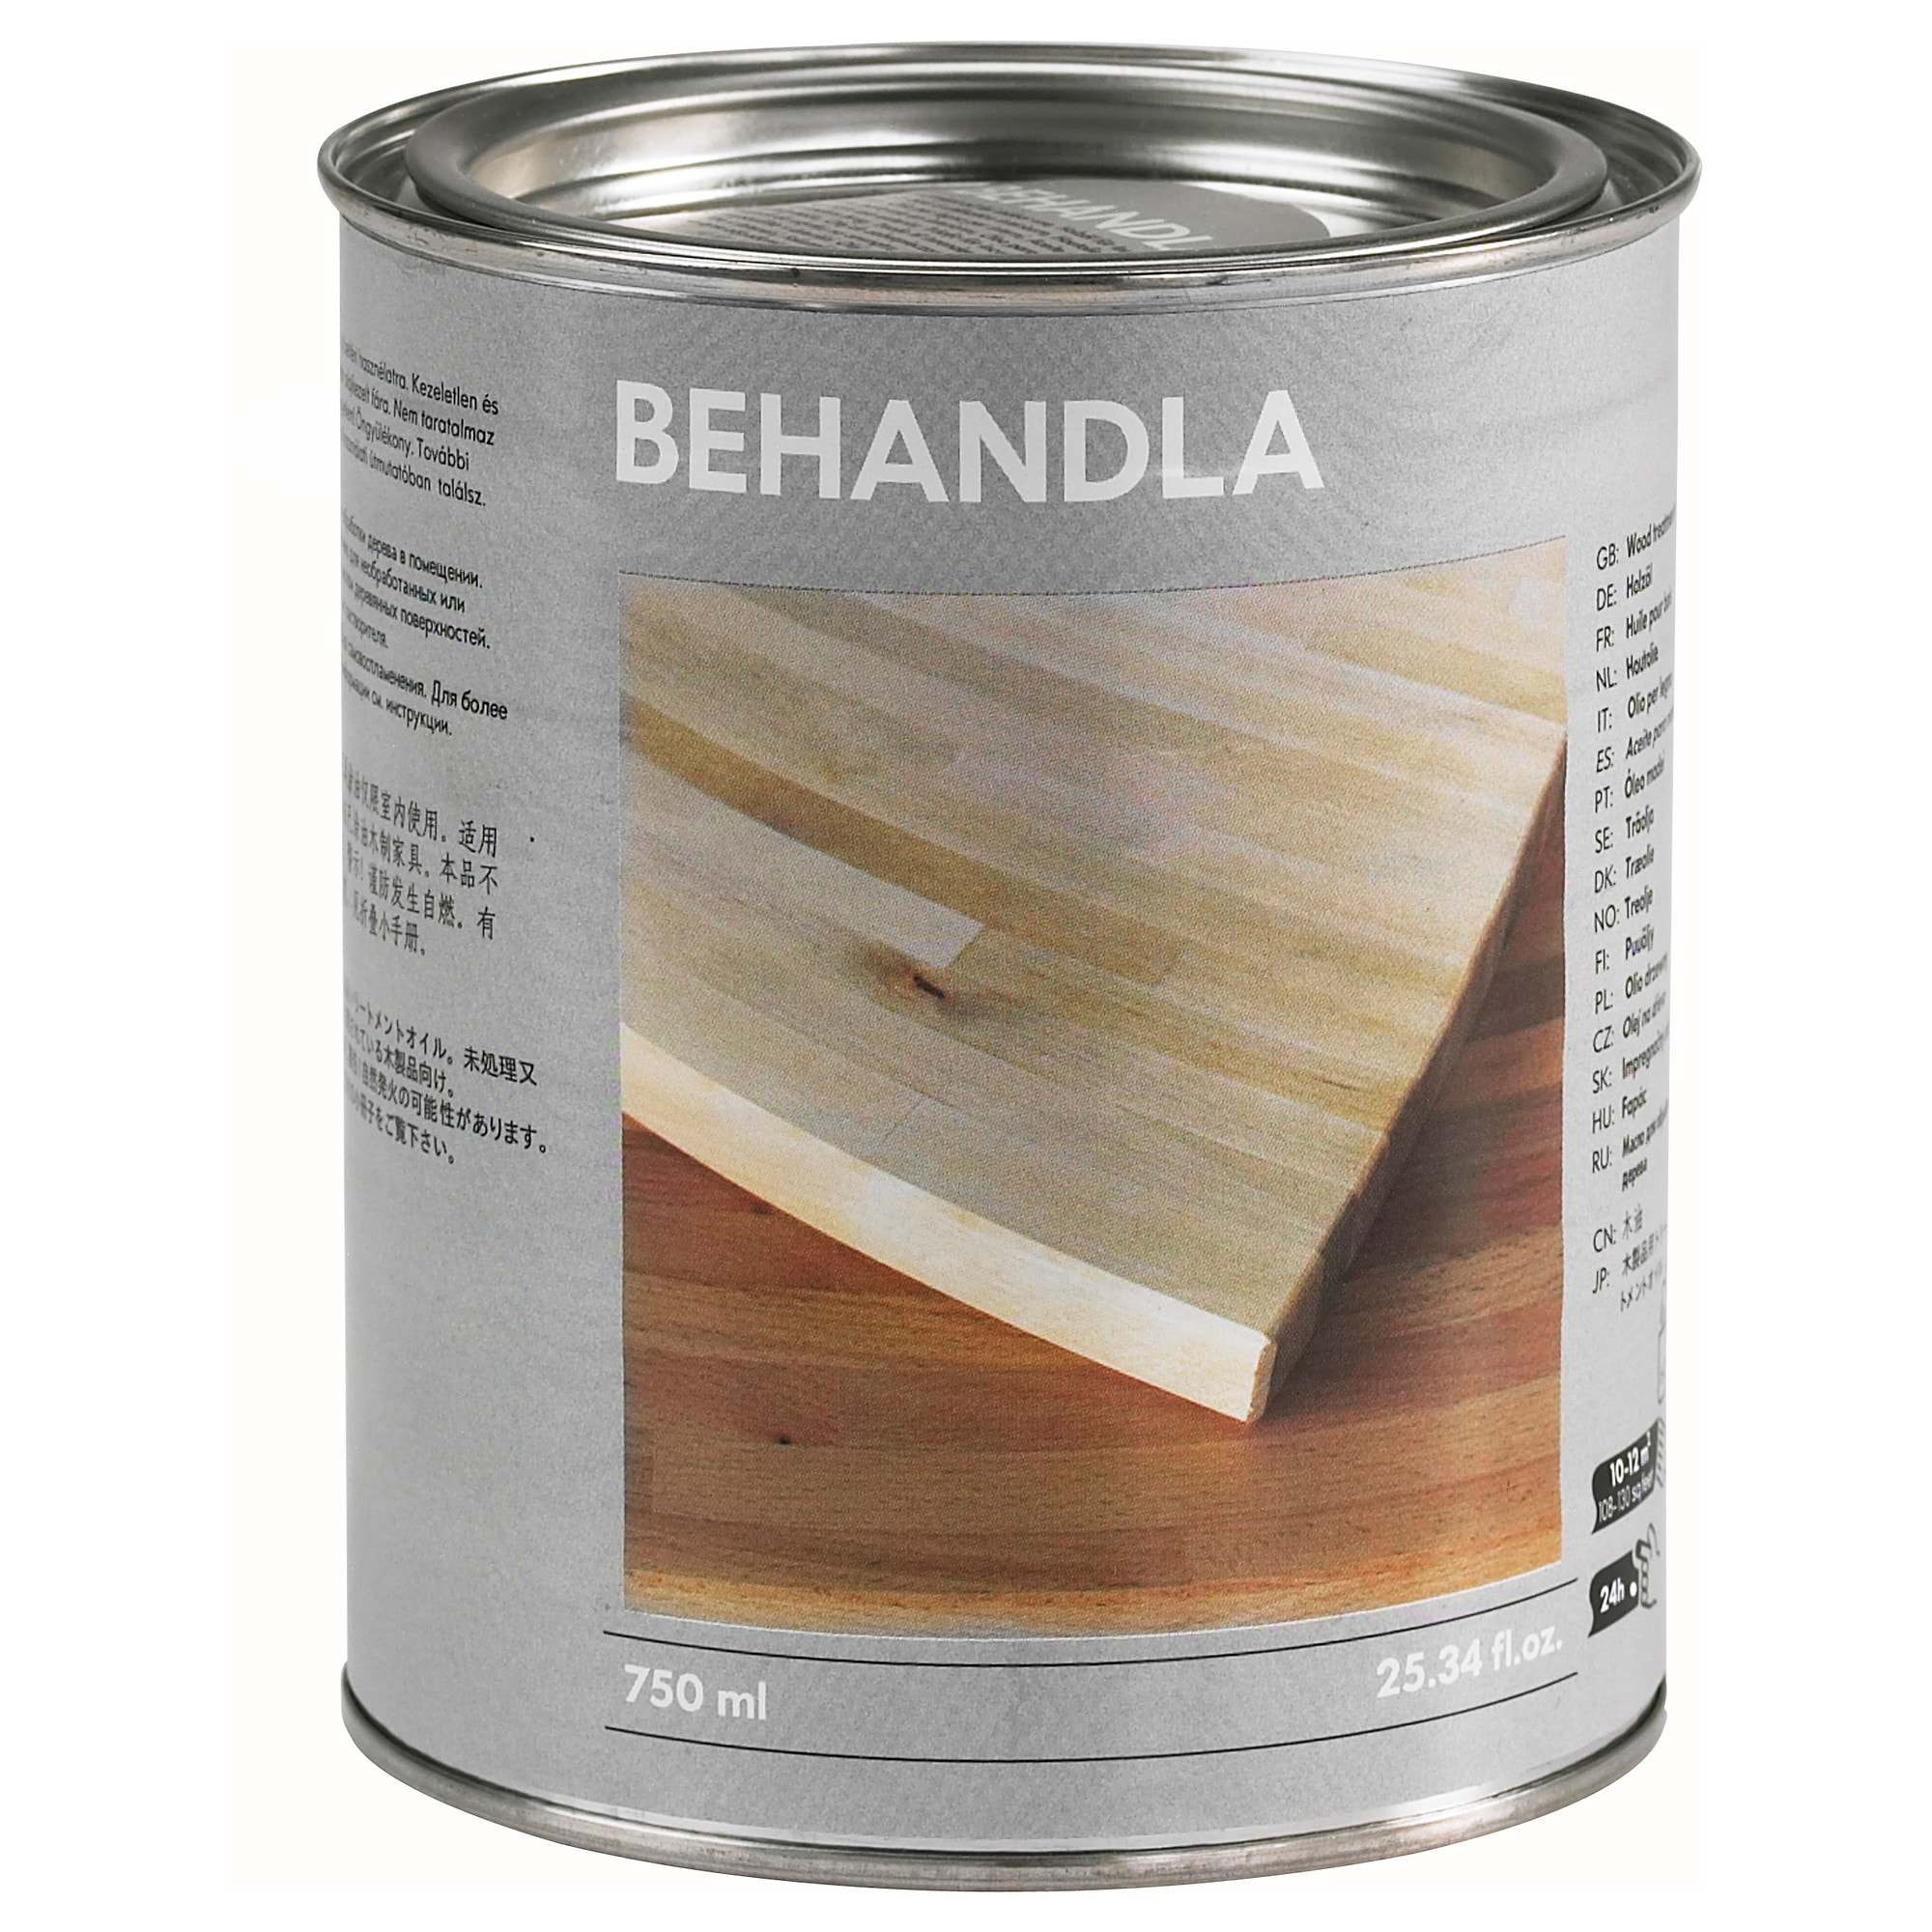 Ikea Wood Countertop Review Behandla Wood Treatment Oil Indoor Use Ikea